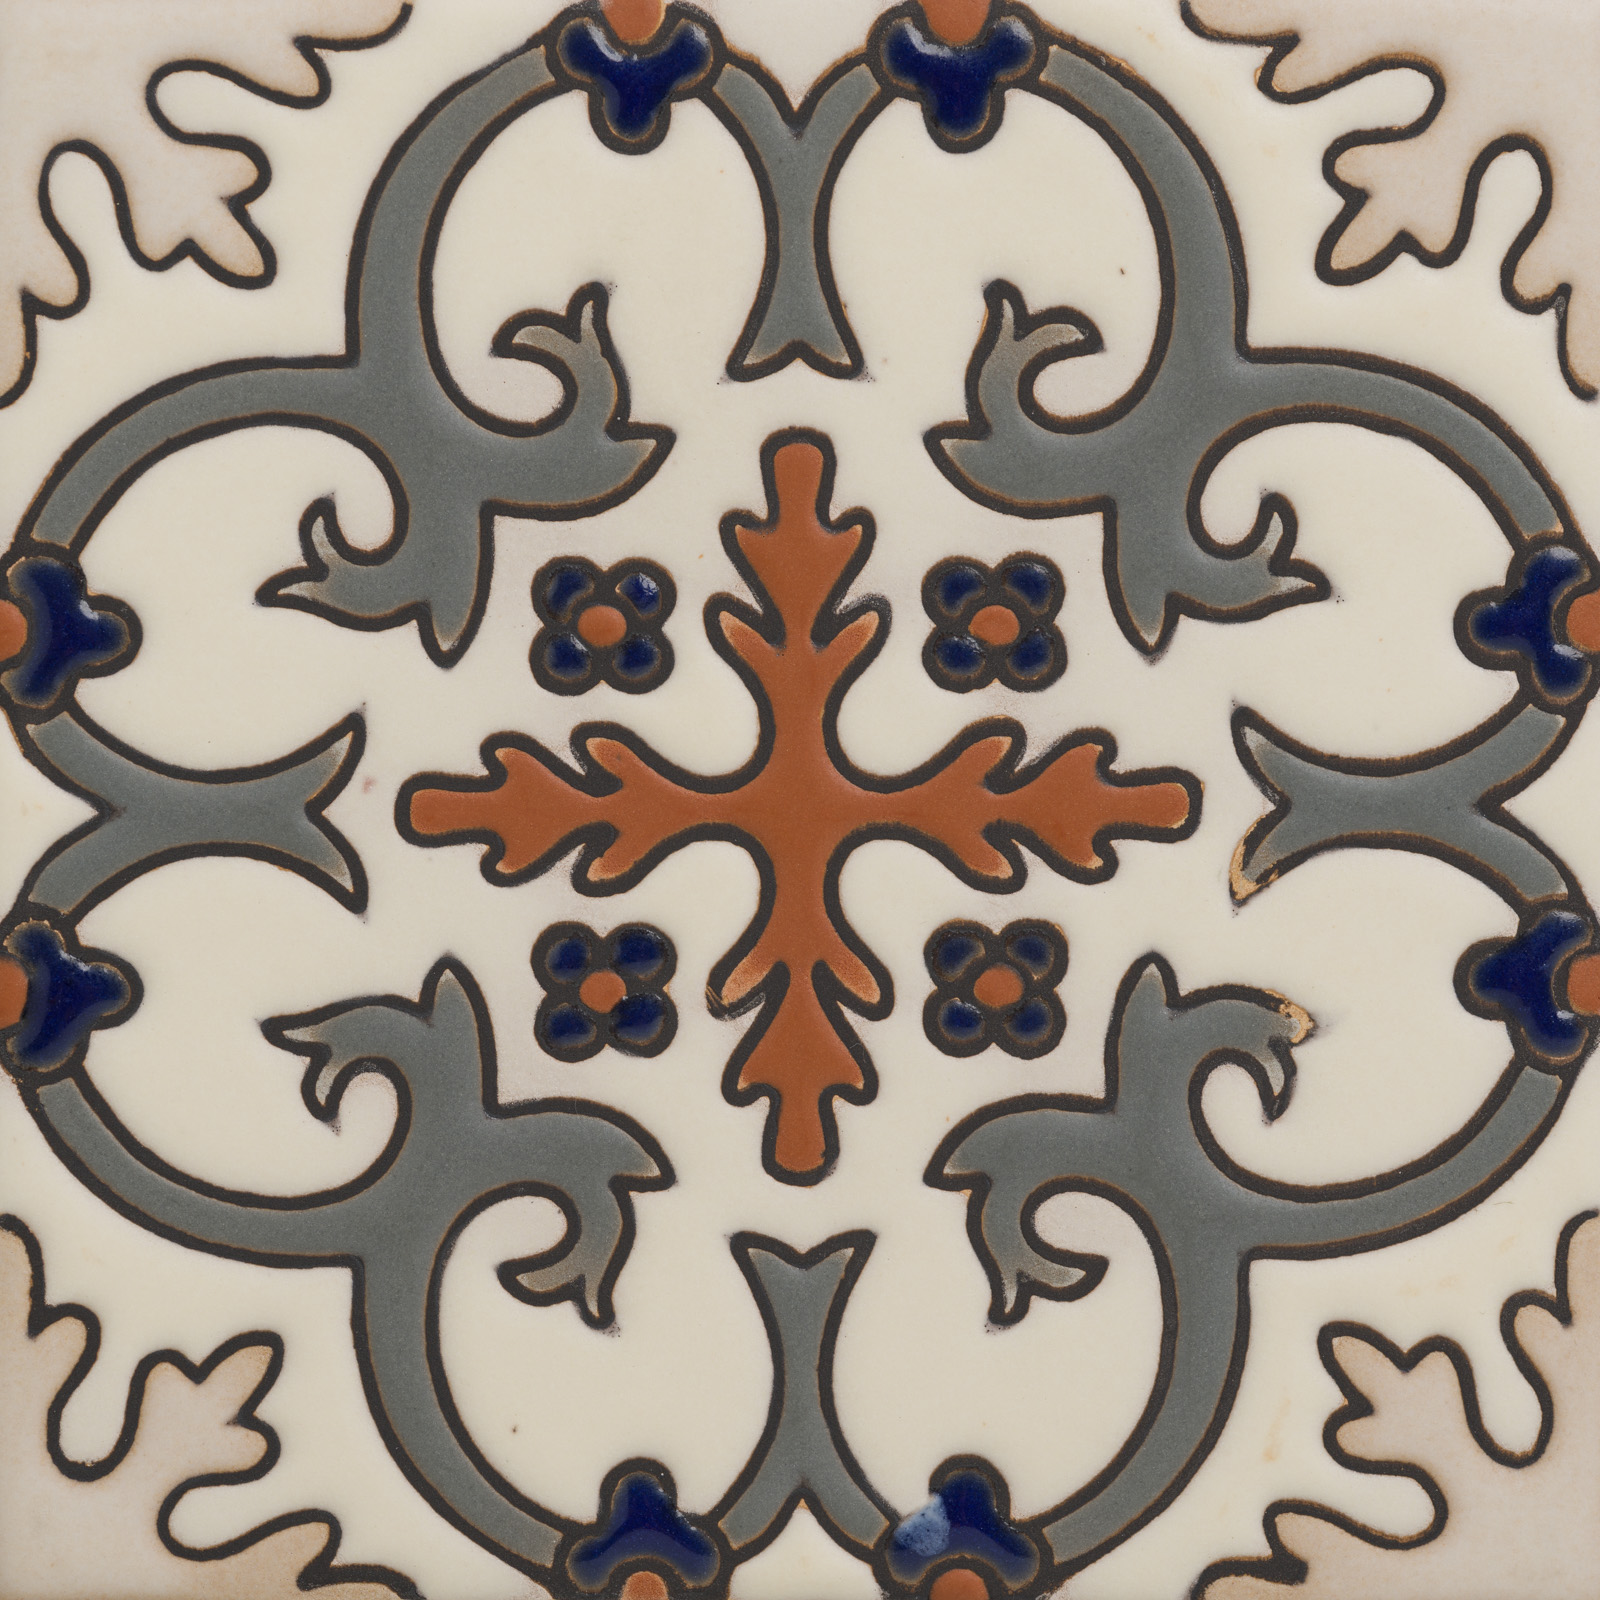 New York Ceramic Tile Collection 4 Emma Wanless